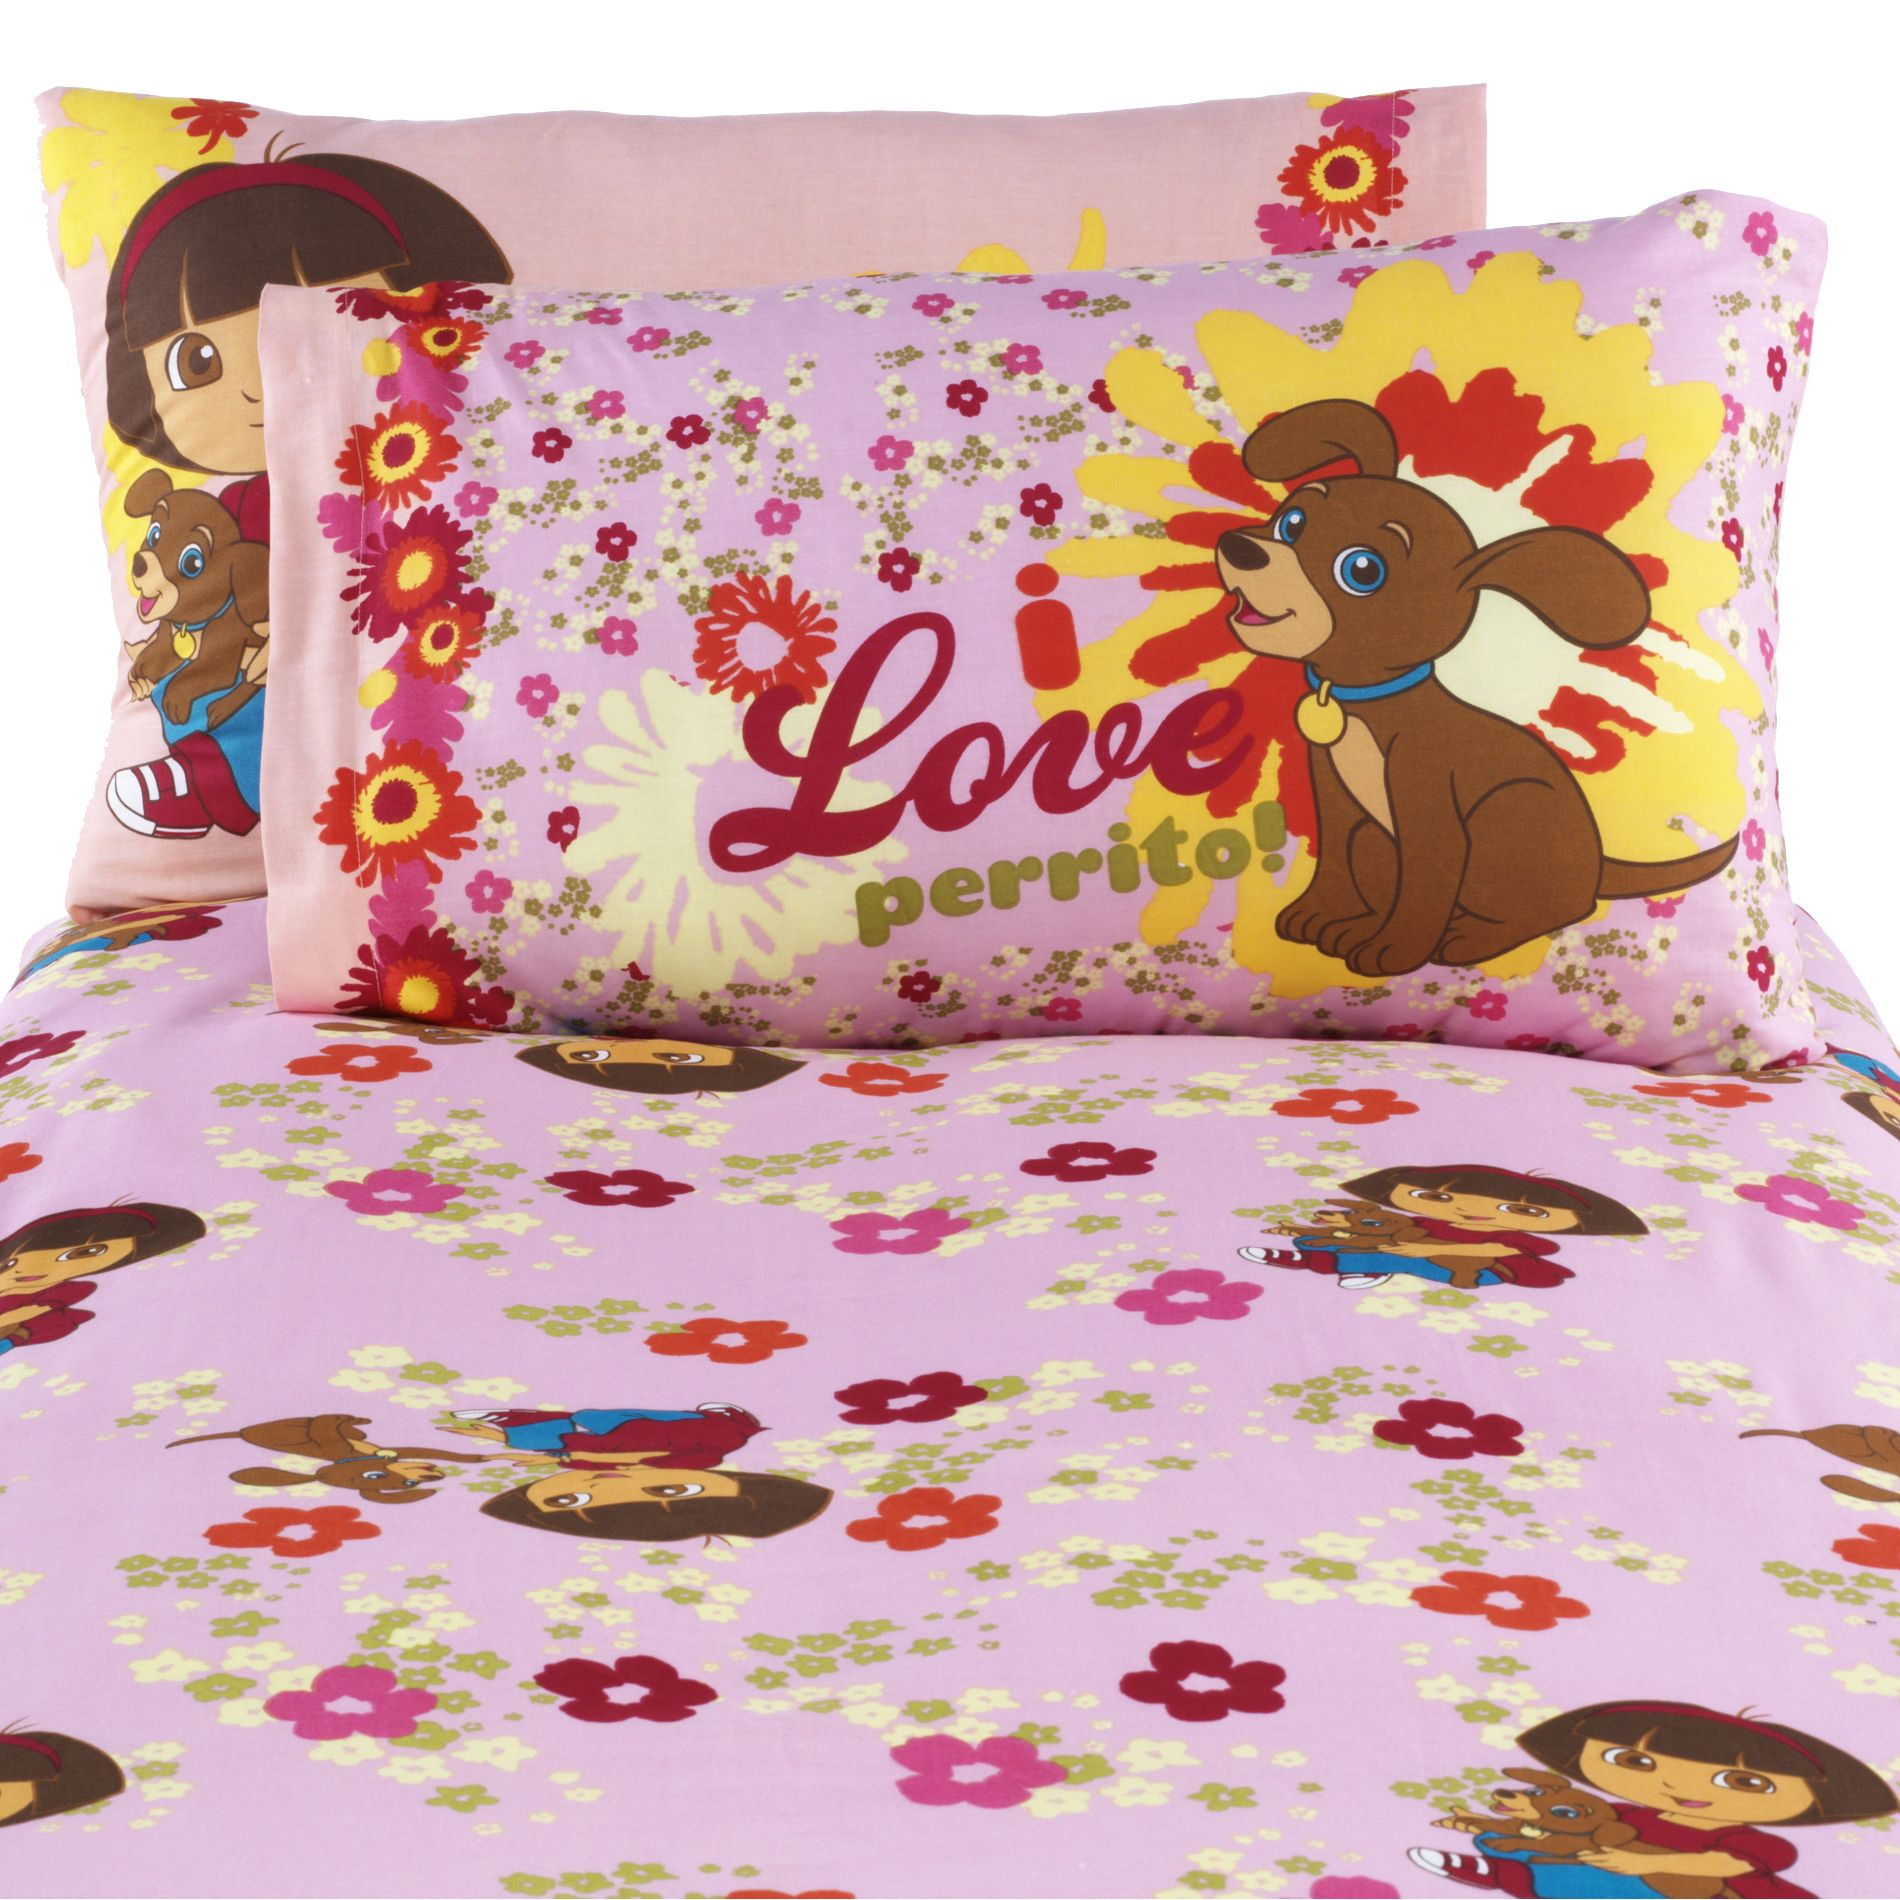 Dora And Puppy Pillowcase